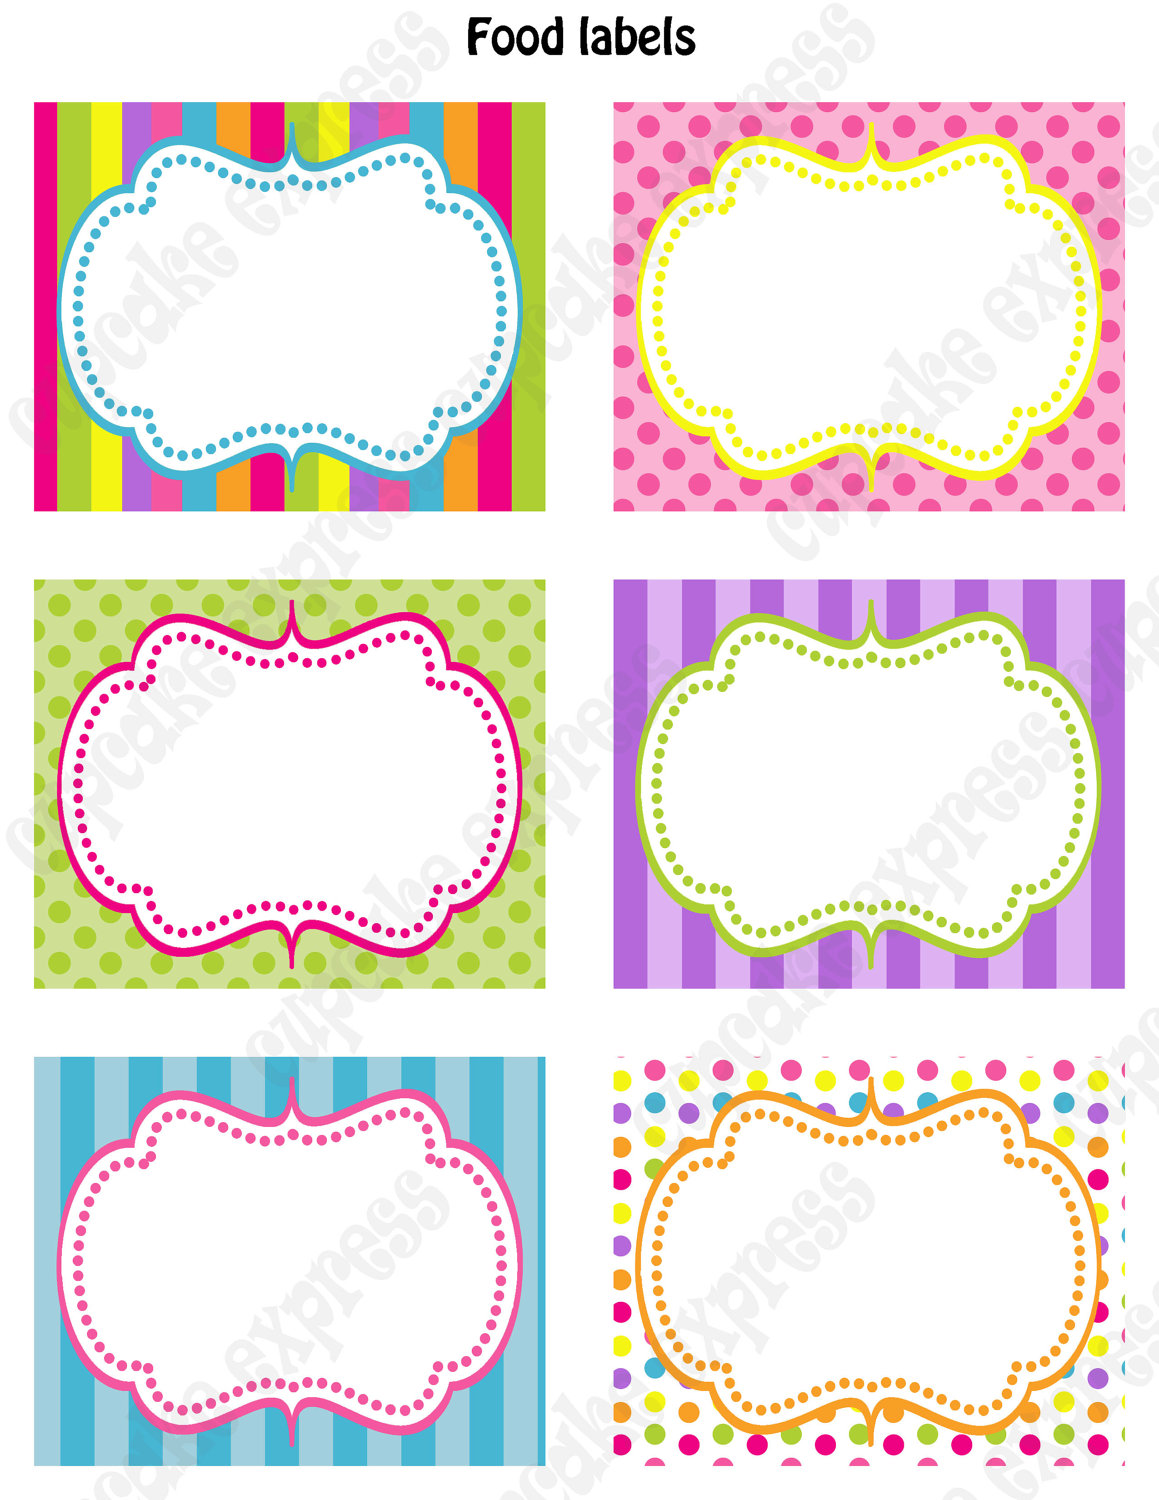 Candy Shoppe Birthday Party PRINTABLE Food Labels pink green blue.